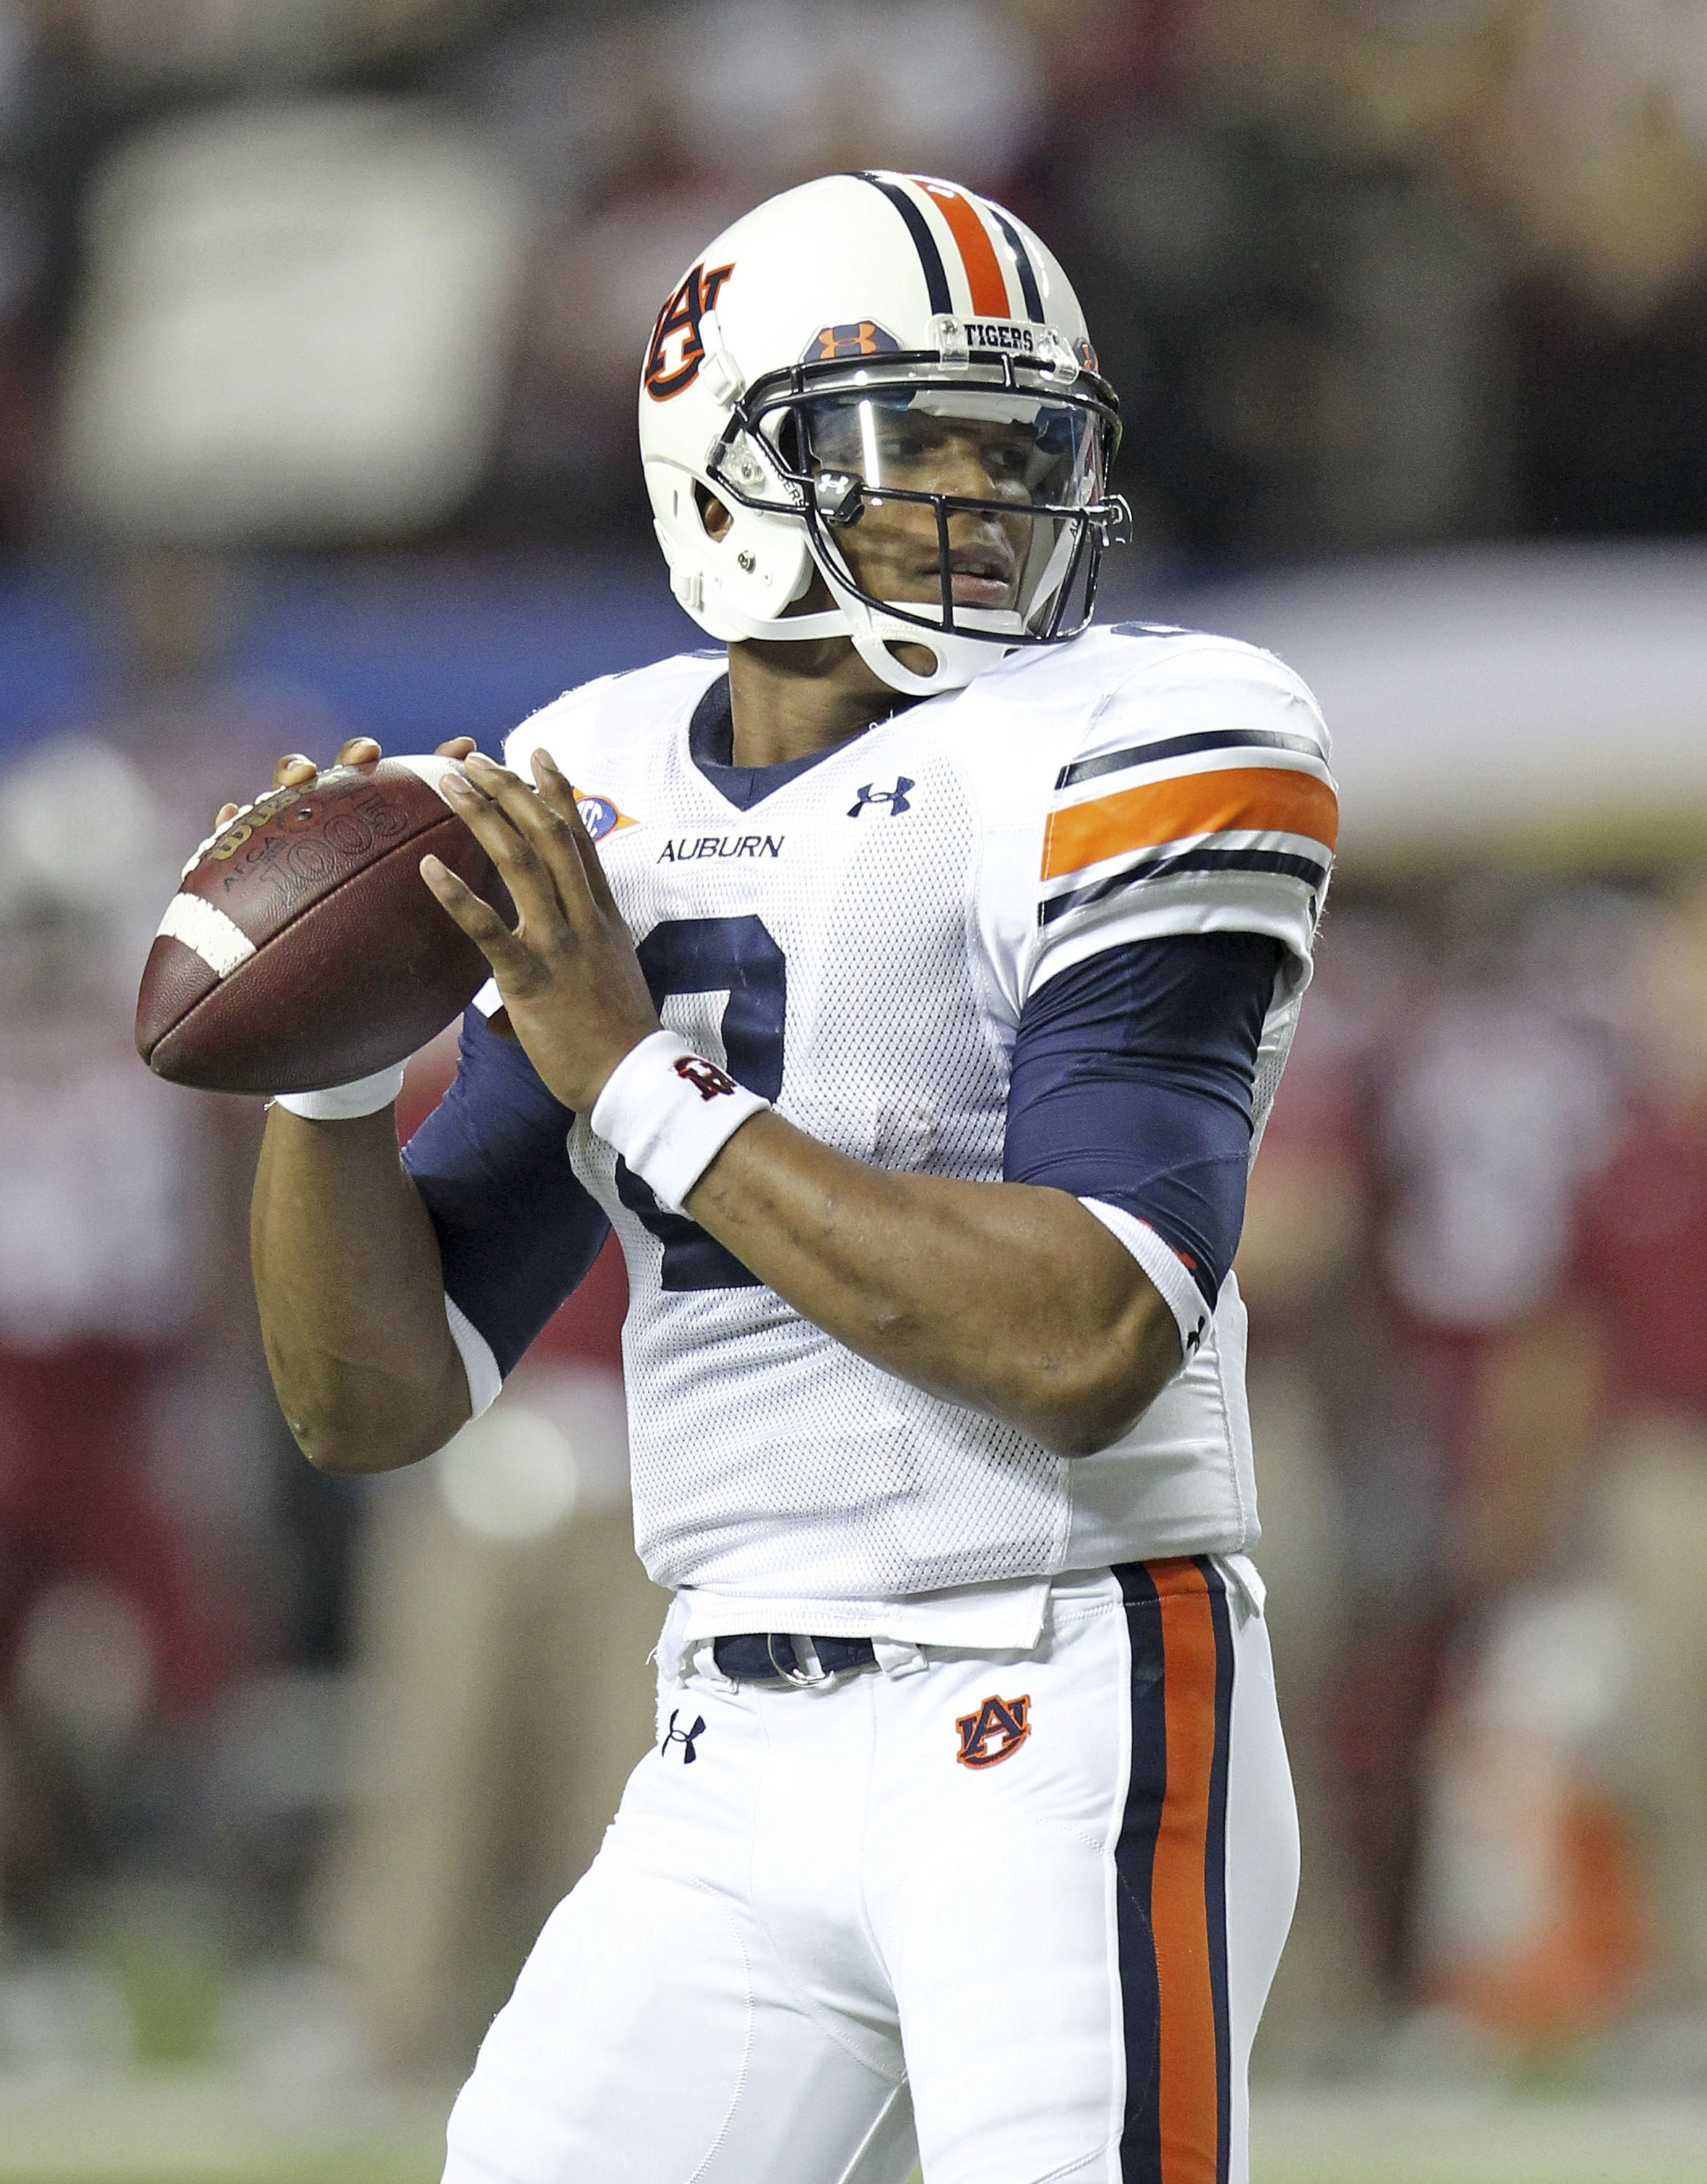 ATLANTA - DECEMBER 04:  Quarterback Cam Newton #2 of the Auburn Tigers looks to pass the ball during the 2010 SEC Championship against the South Carolina Gamecocks at Georgia Dome on December 4, 2010 in Atlanta, Georgia.  (Photo by Mike Zarrilli/Getty Ima